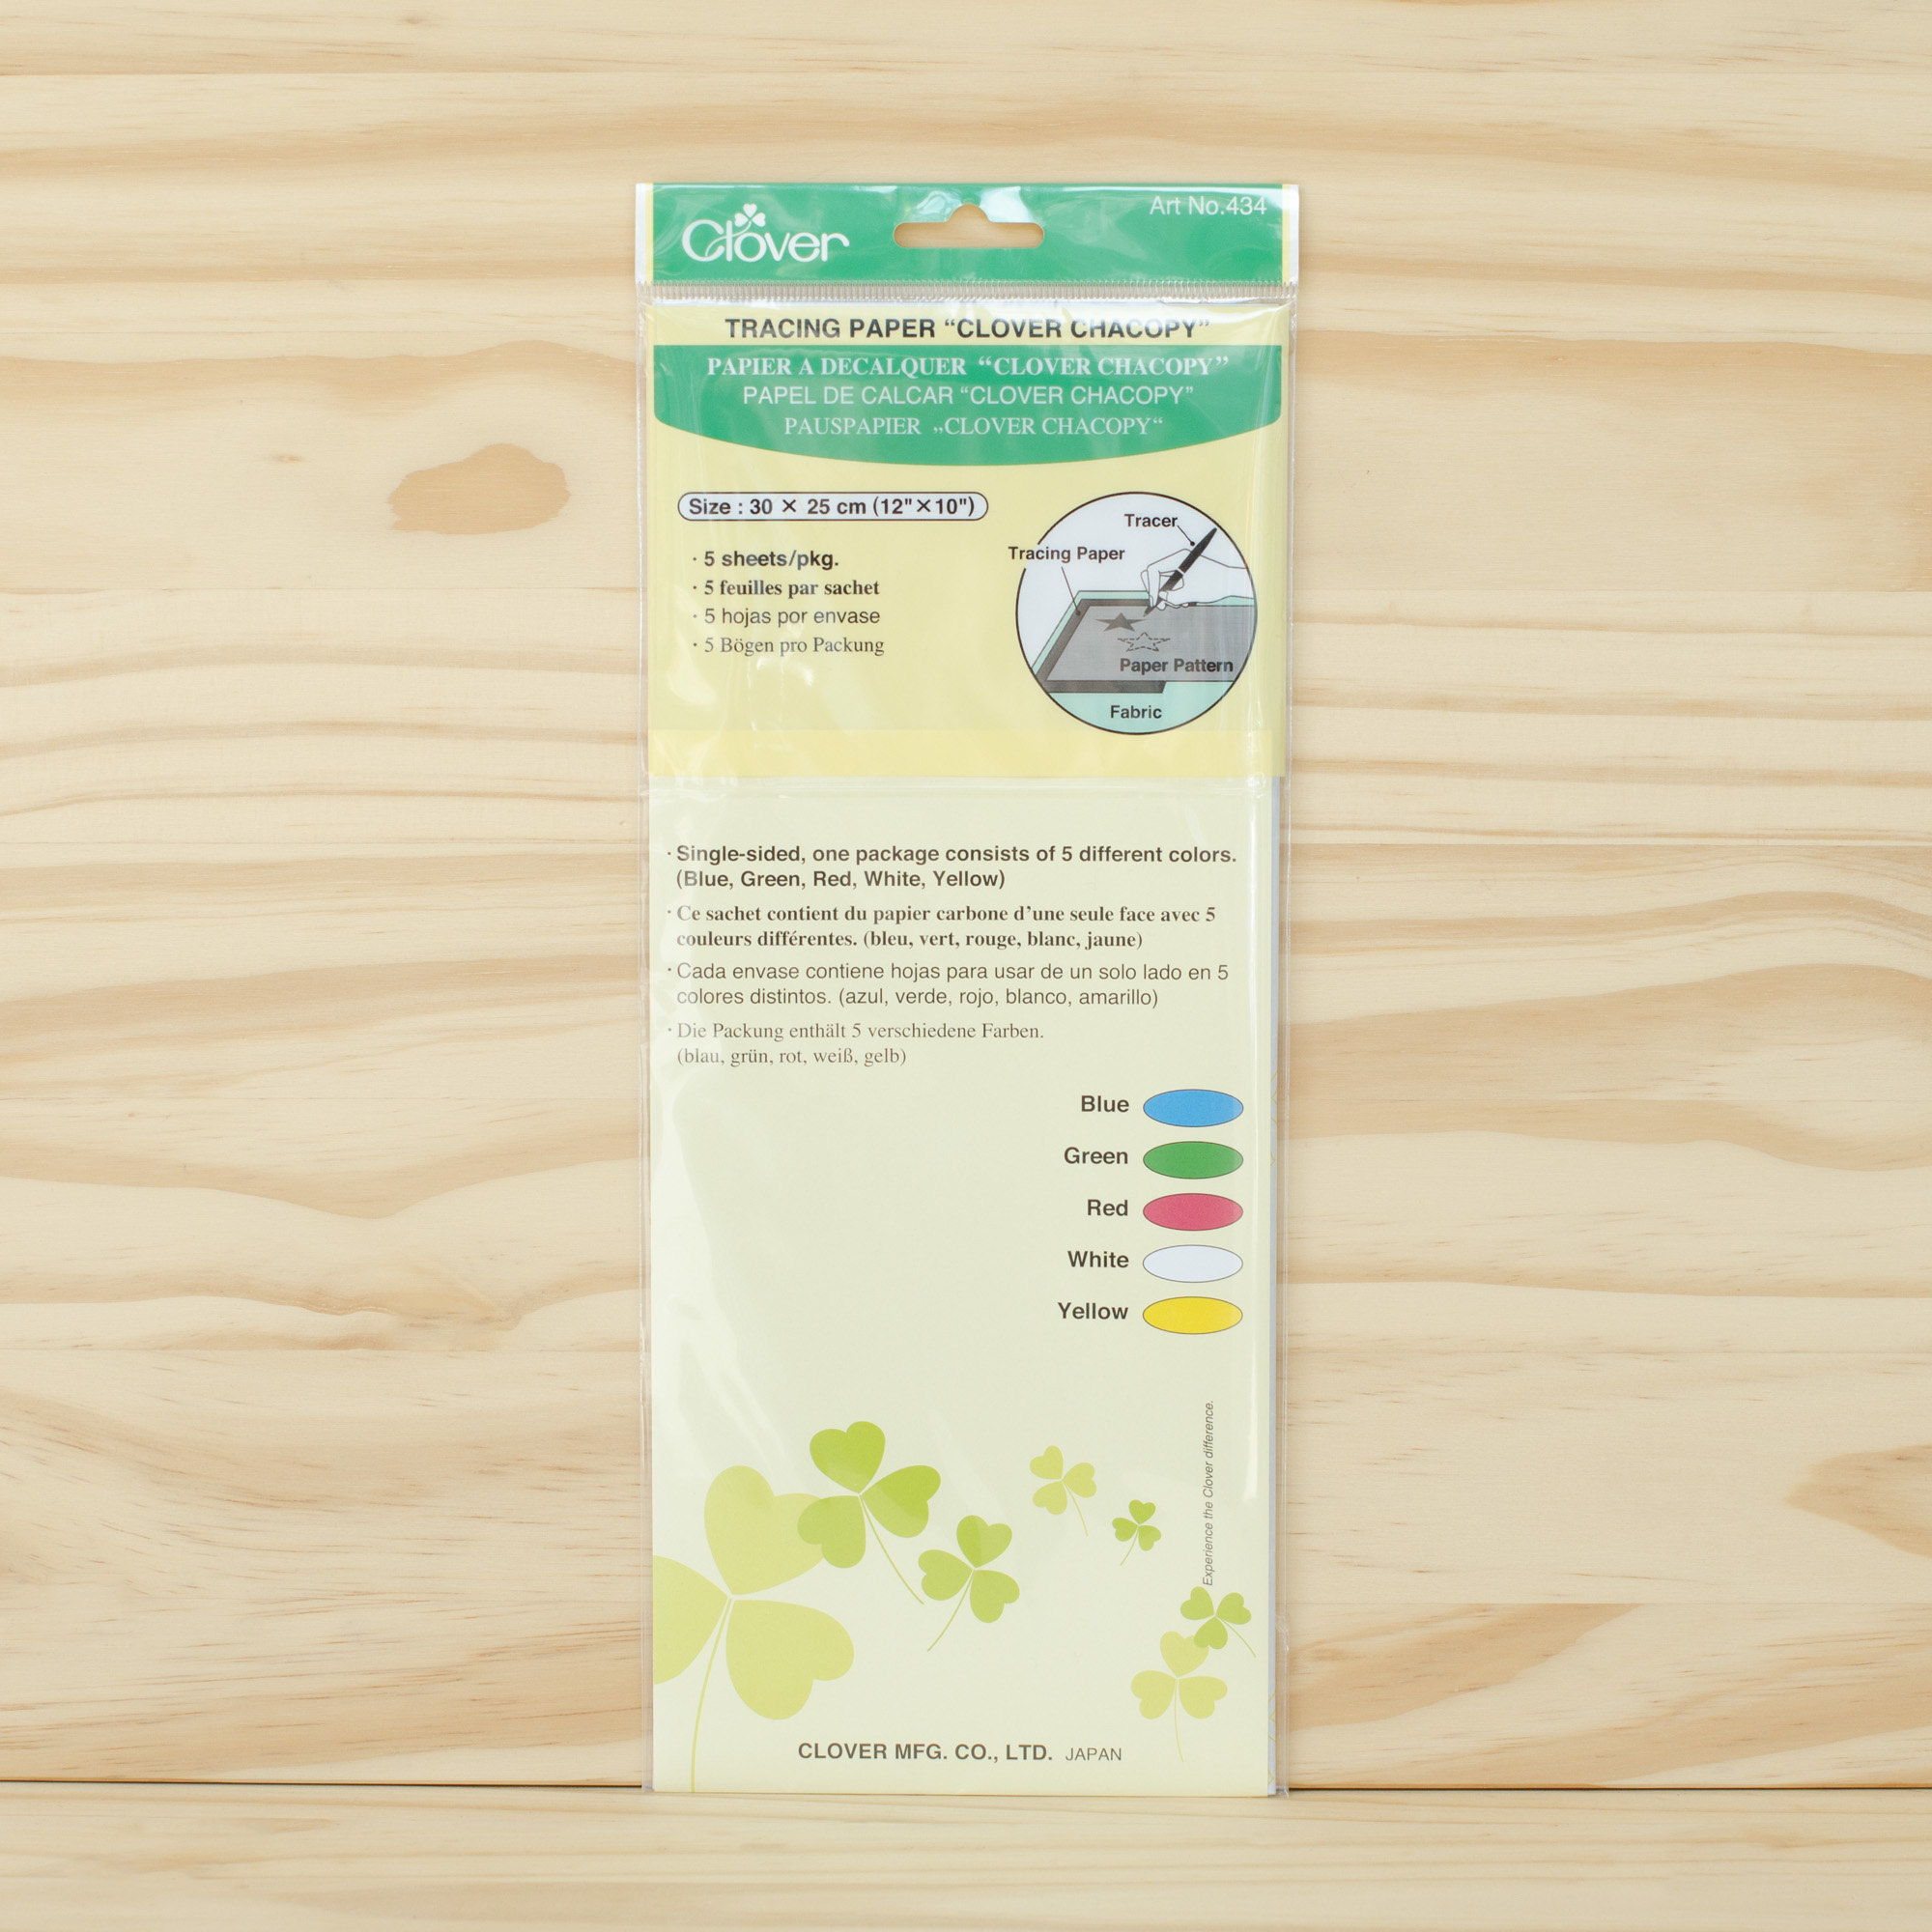 Clover : Chacopy Tracing Paper